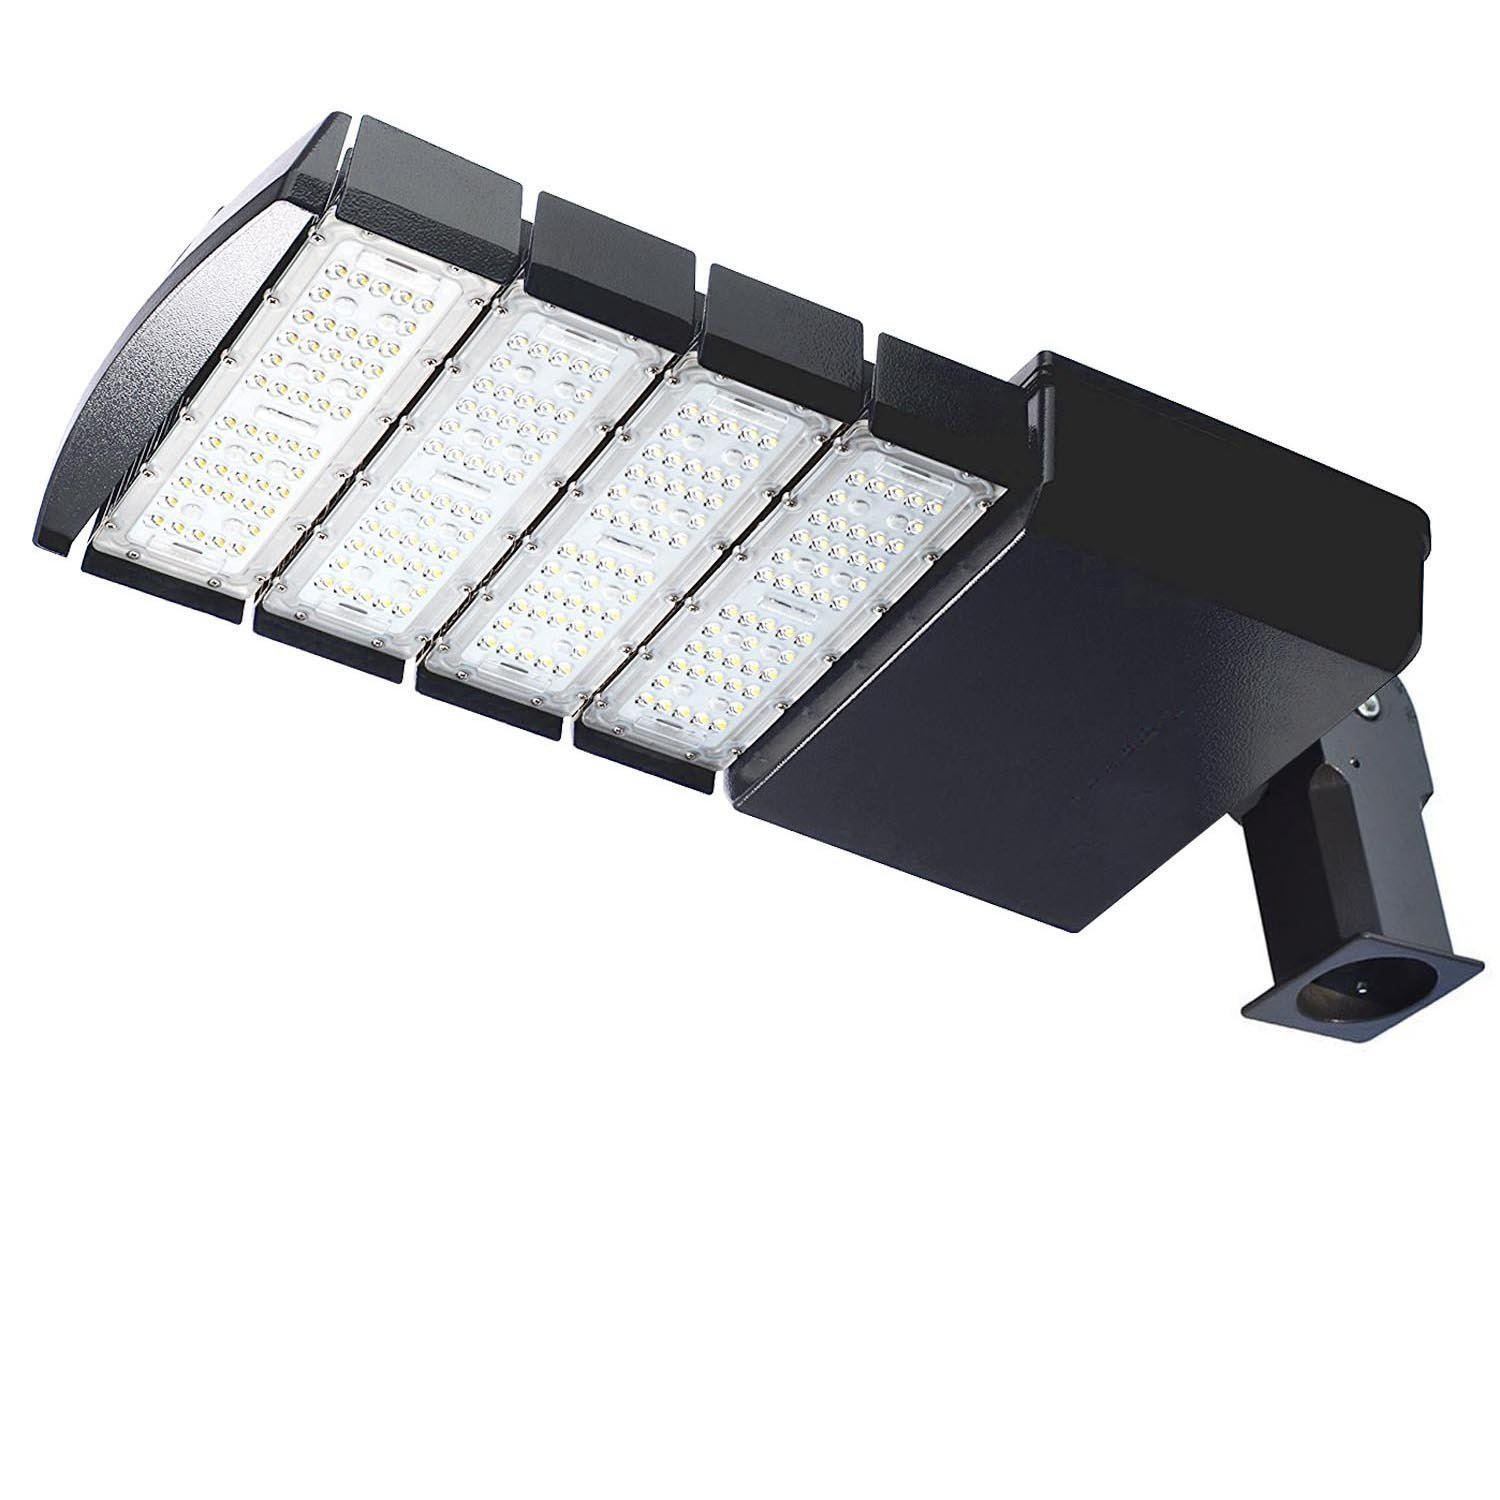 LED Shoebox Pole Light 200W (600W Equal HID/HPS Replacement) and 0-10V Dimmable ,Daylight White 5000K ETL DLC Listed with Slip Fitter Adjustable Mount for Parking Lot Outdoor Street Area Light